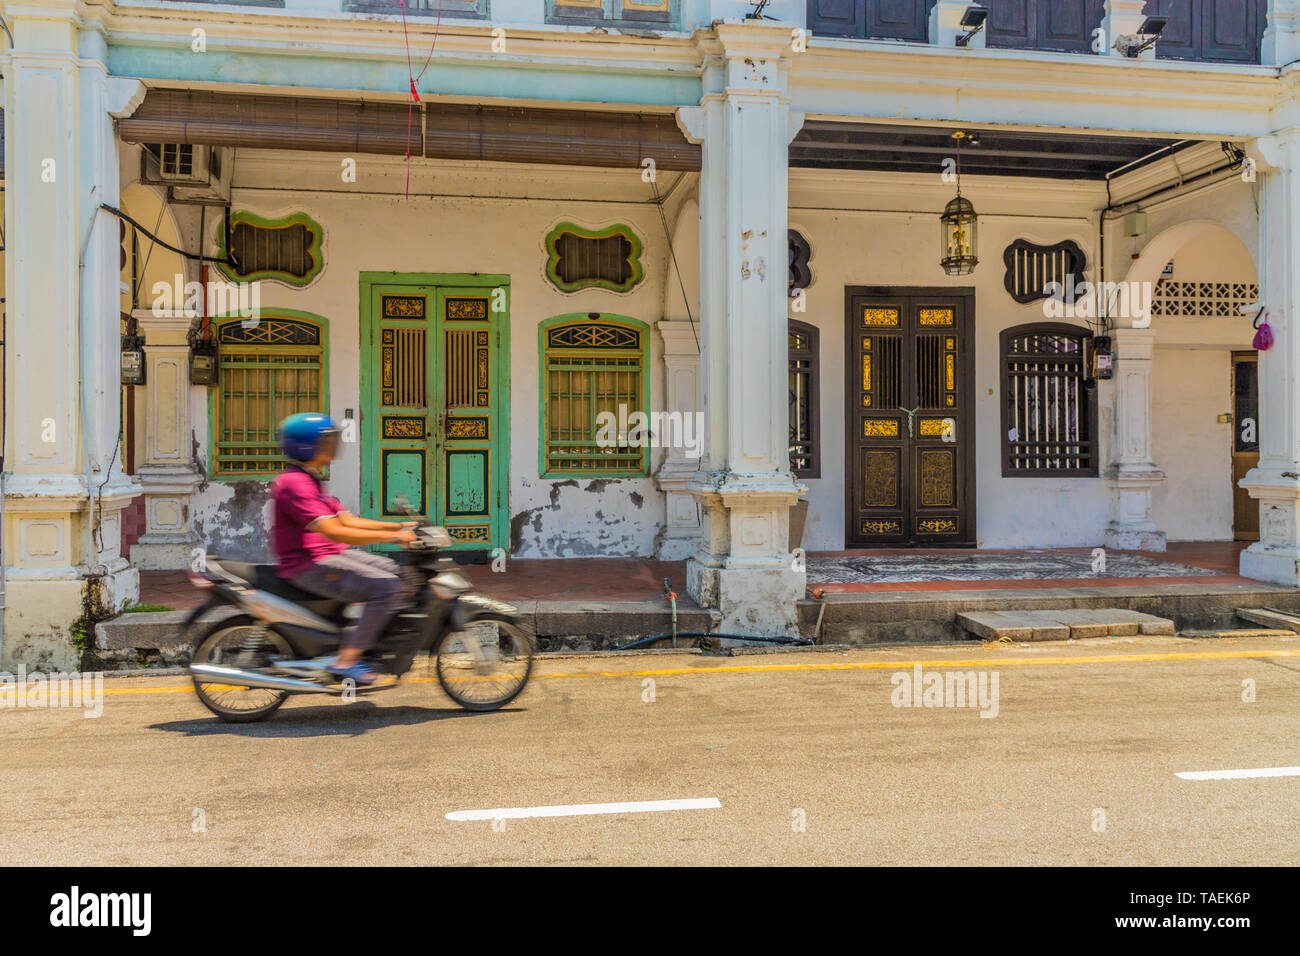 Traditional chinese shophouse architecture in George Town Malaysia - Stock Image